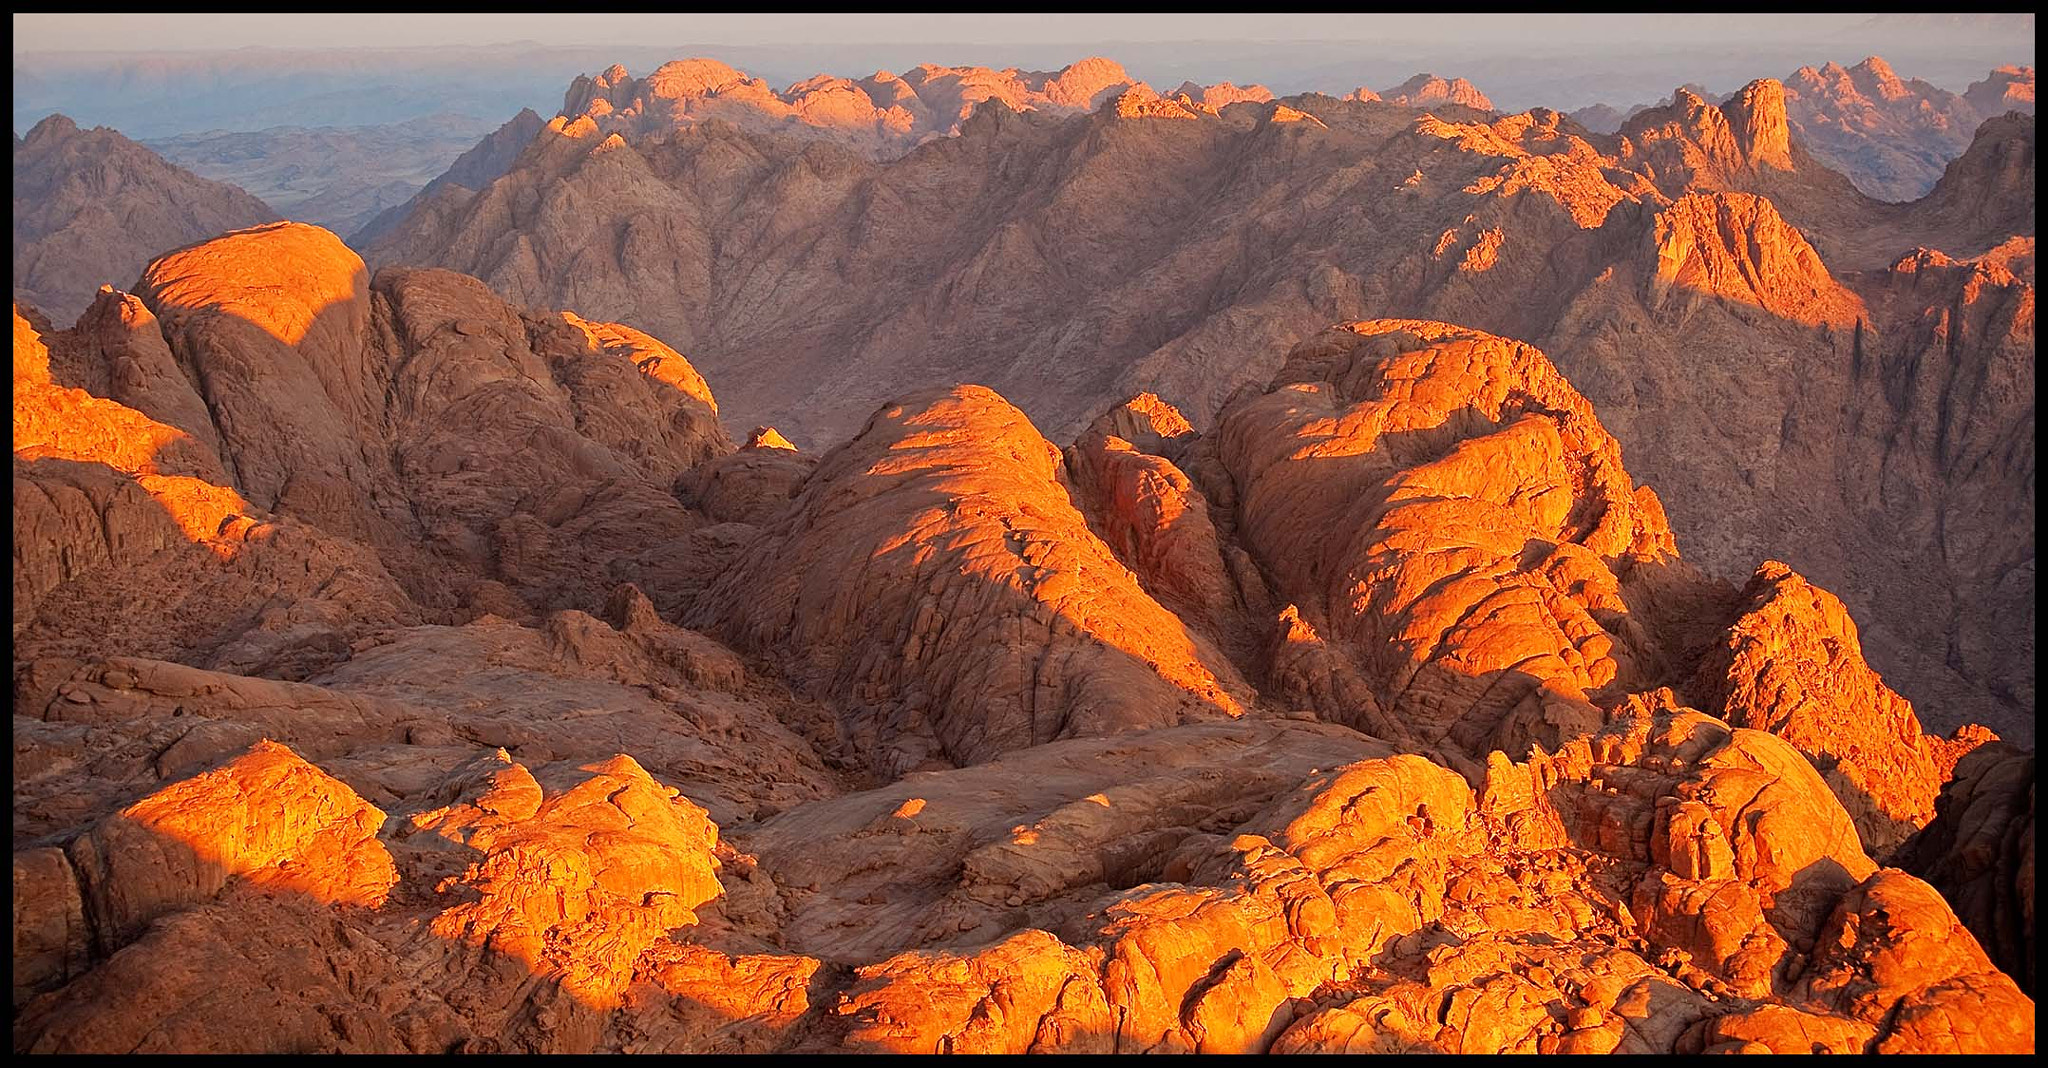 Photograph Mountains Ablaze by Anthony W. S. Soo on 500px